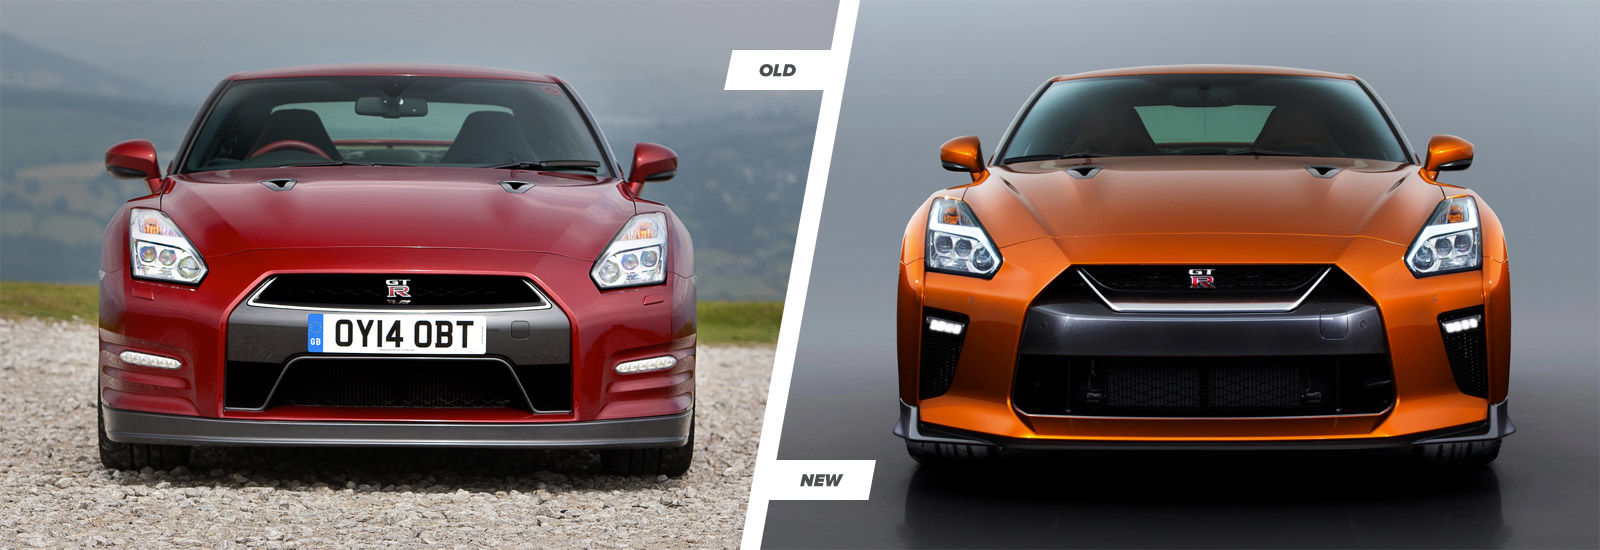 Nissan GT R Old Vs New Styling